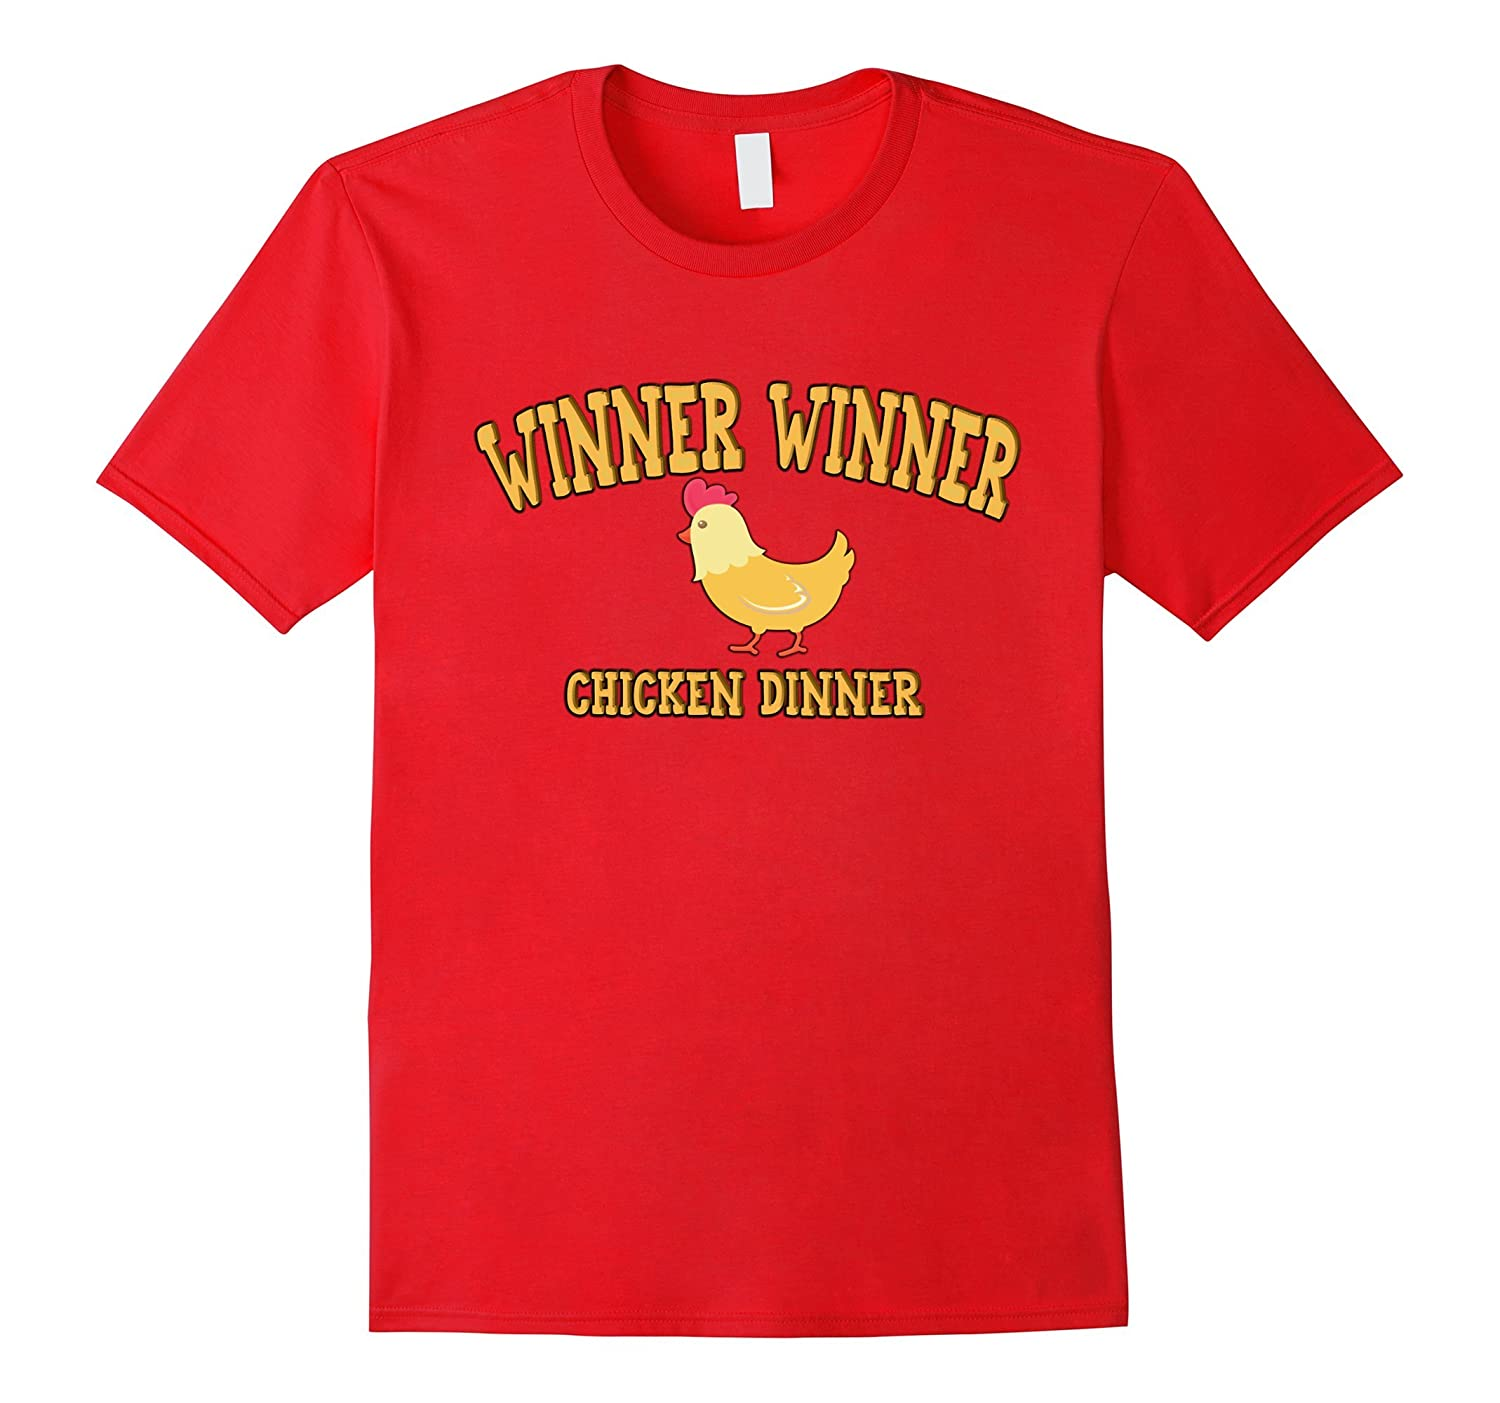 Winner Winner Chicken Dinner Tee Shirt - Battleground Tees-FL